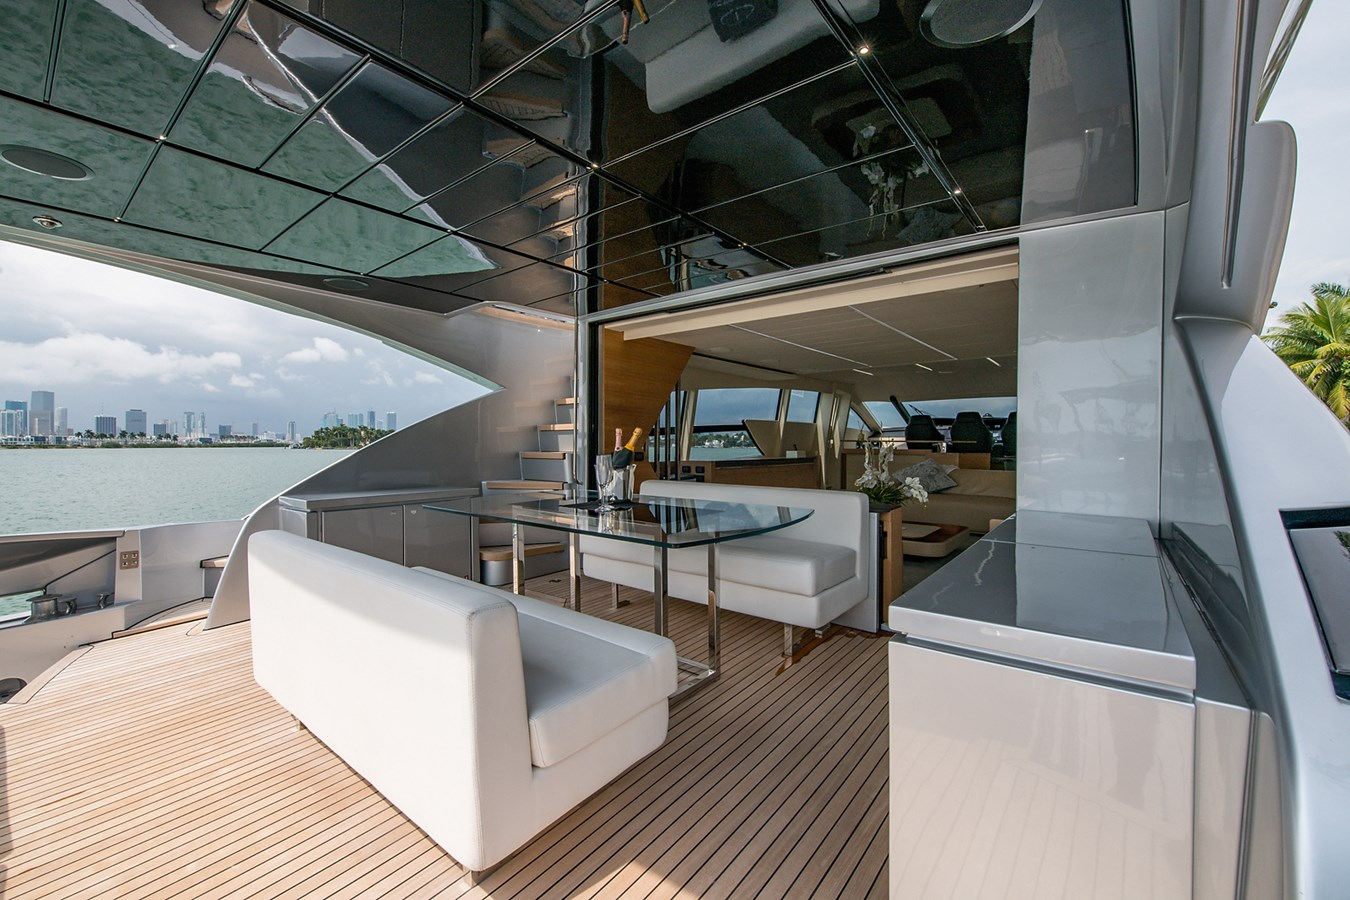 Incognito_Aft deck11 2012 PERSHING  Motor Yacht 2810232